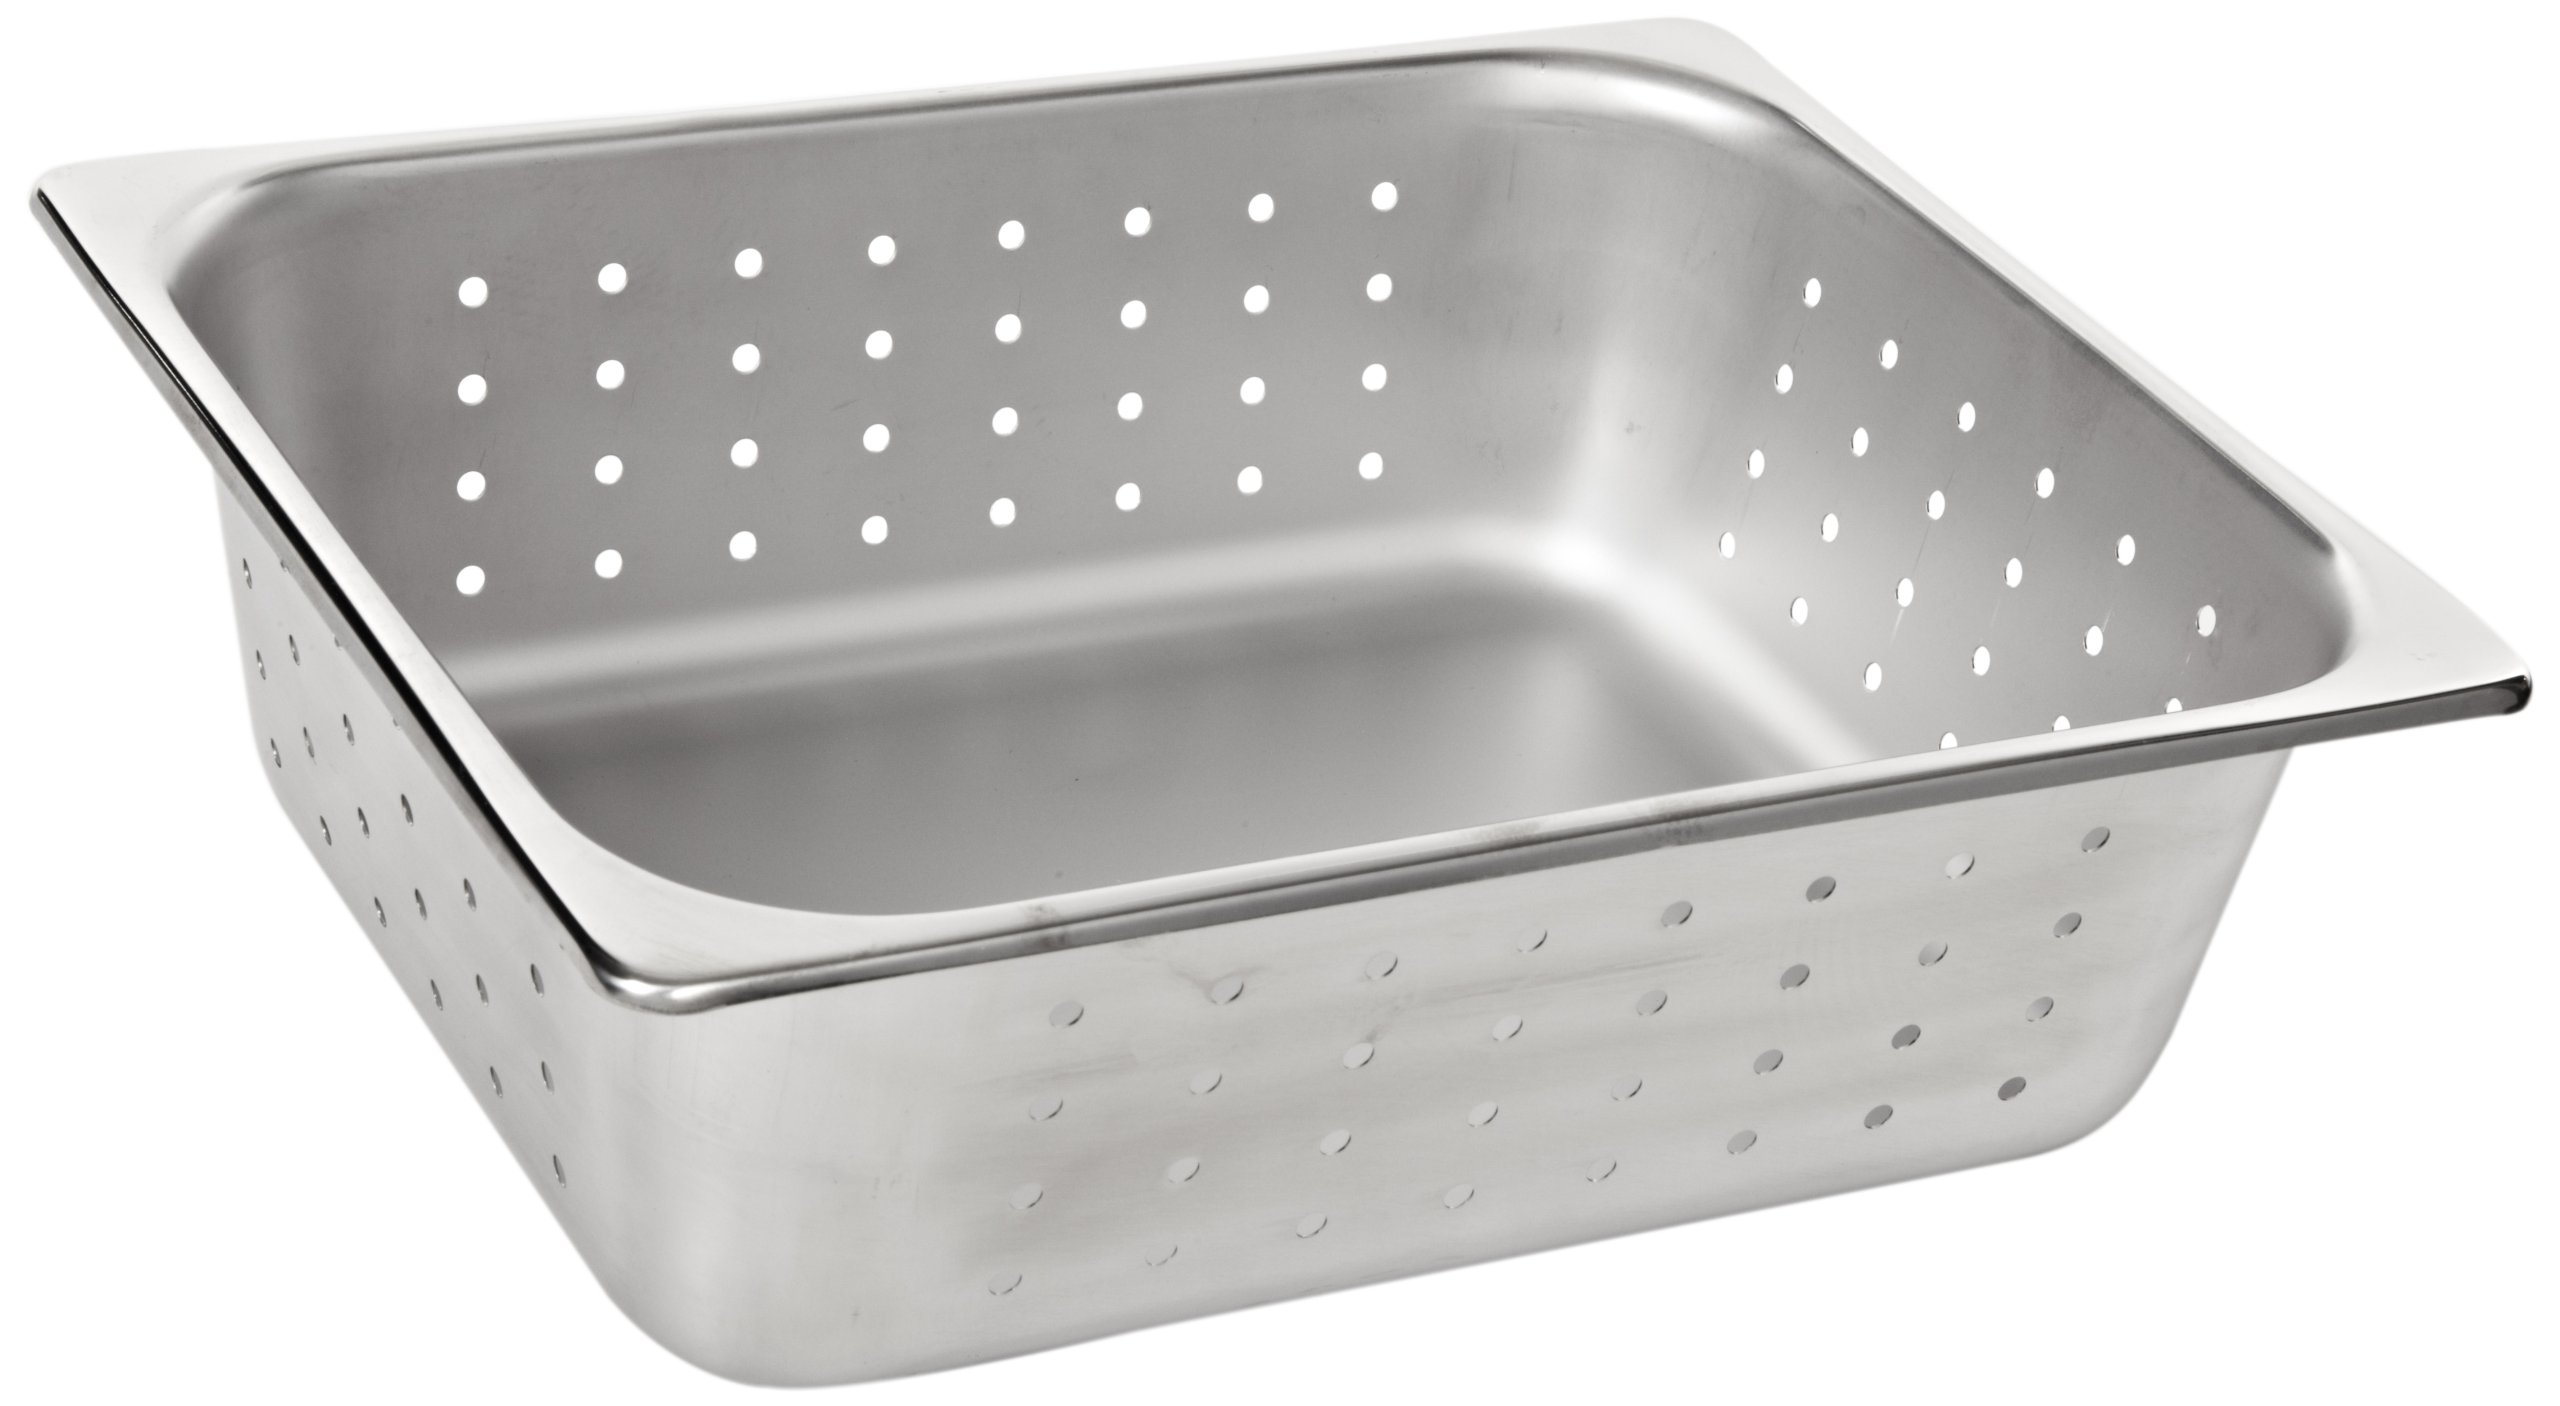 Benchmark 56743 Half-Size Perforated Pan, 12-1/2'' Length x 10-1/4'' Width x 4'' Height